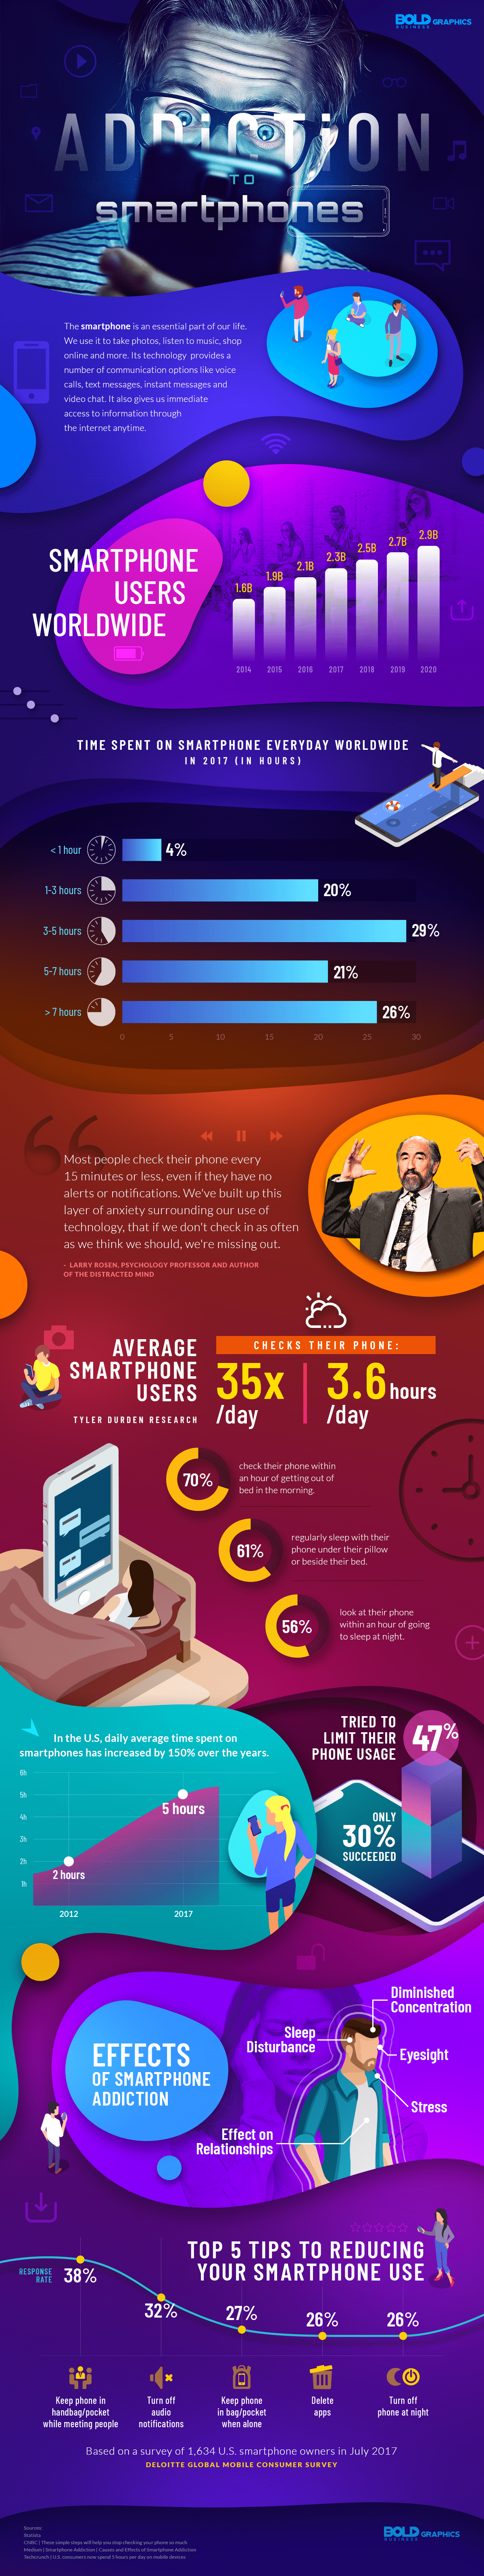 Smartphone Addiction infographic